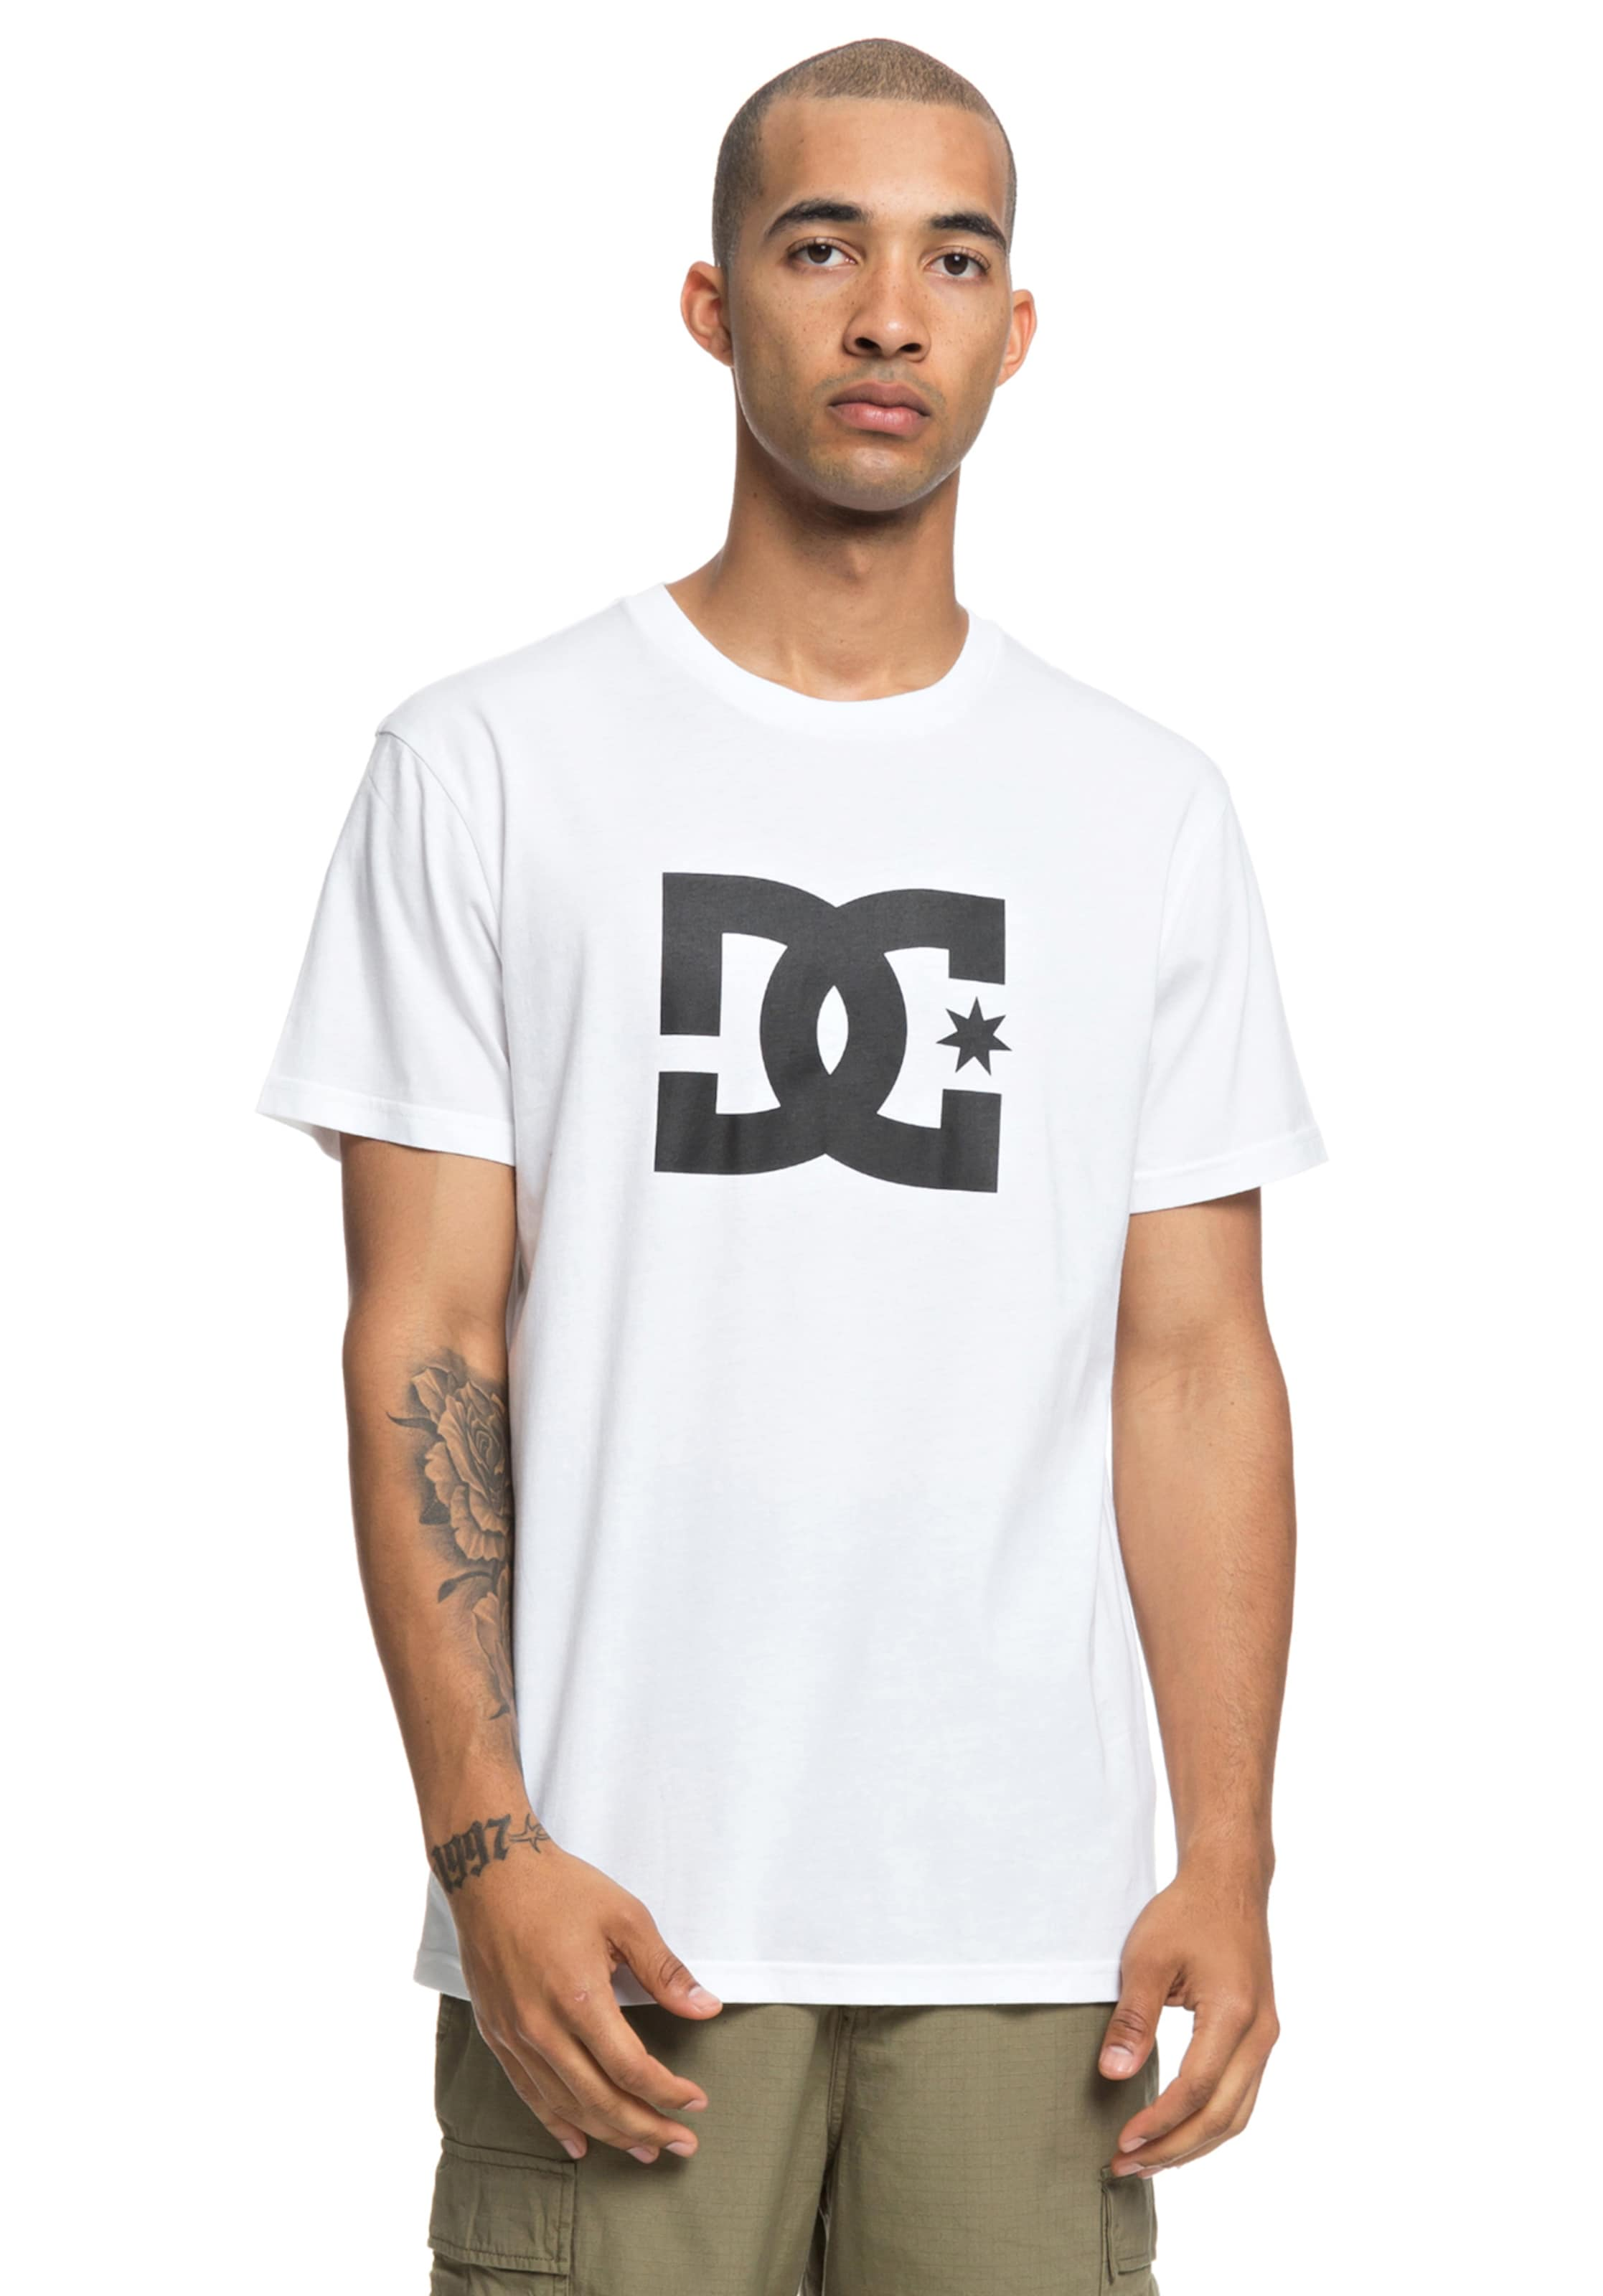 T In Shoes Dc Star Weiß shirt eH2EYWD9I